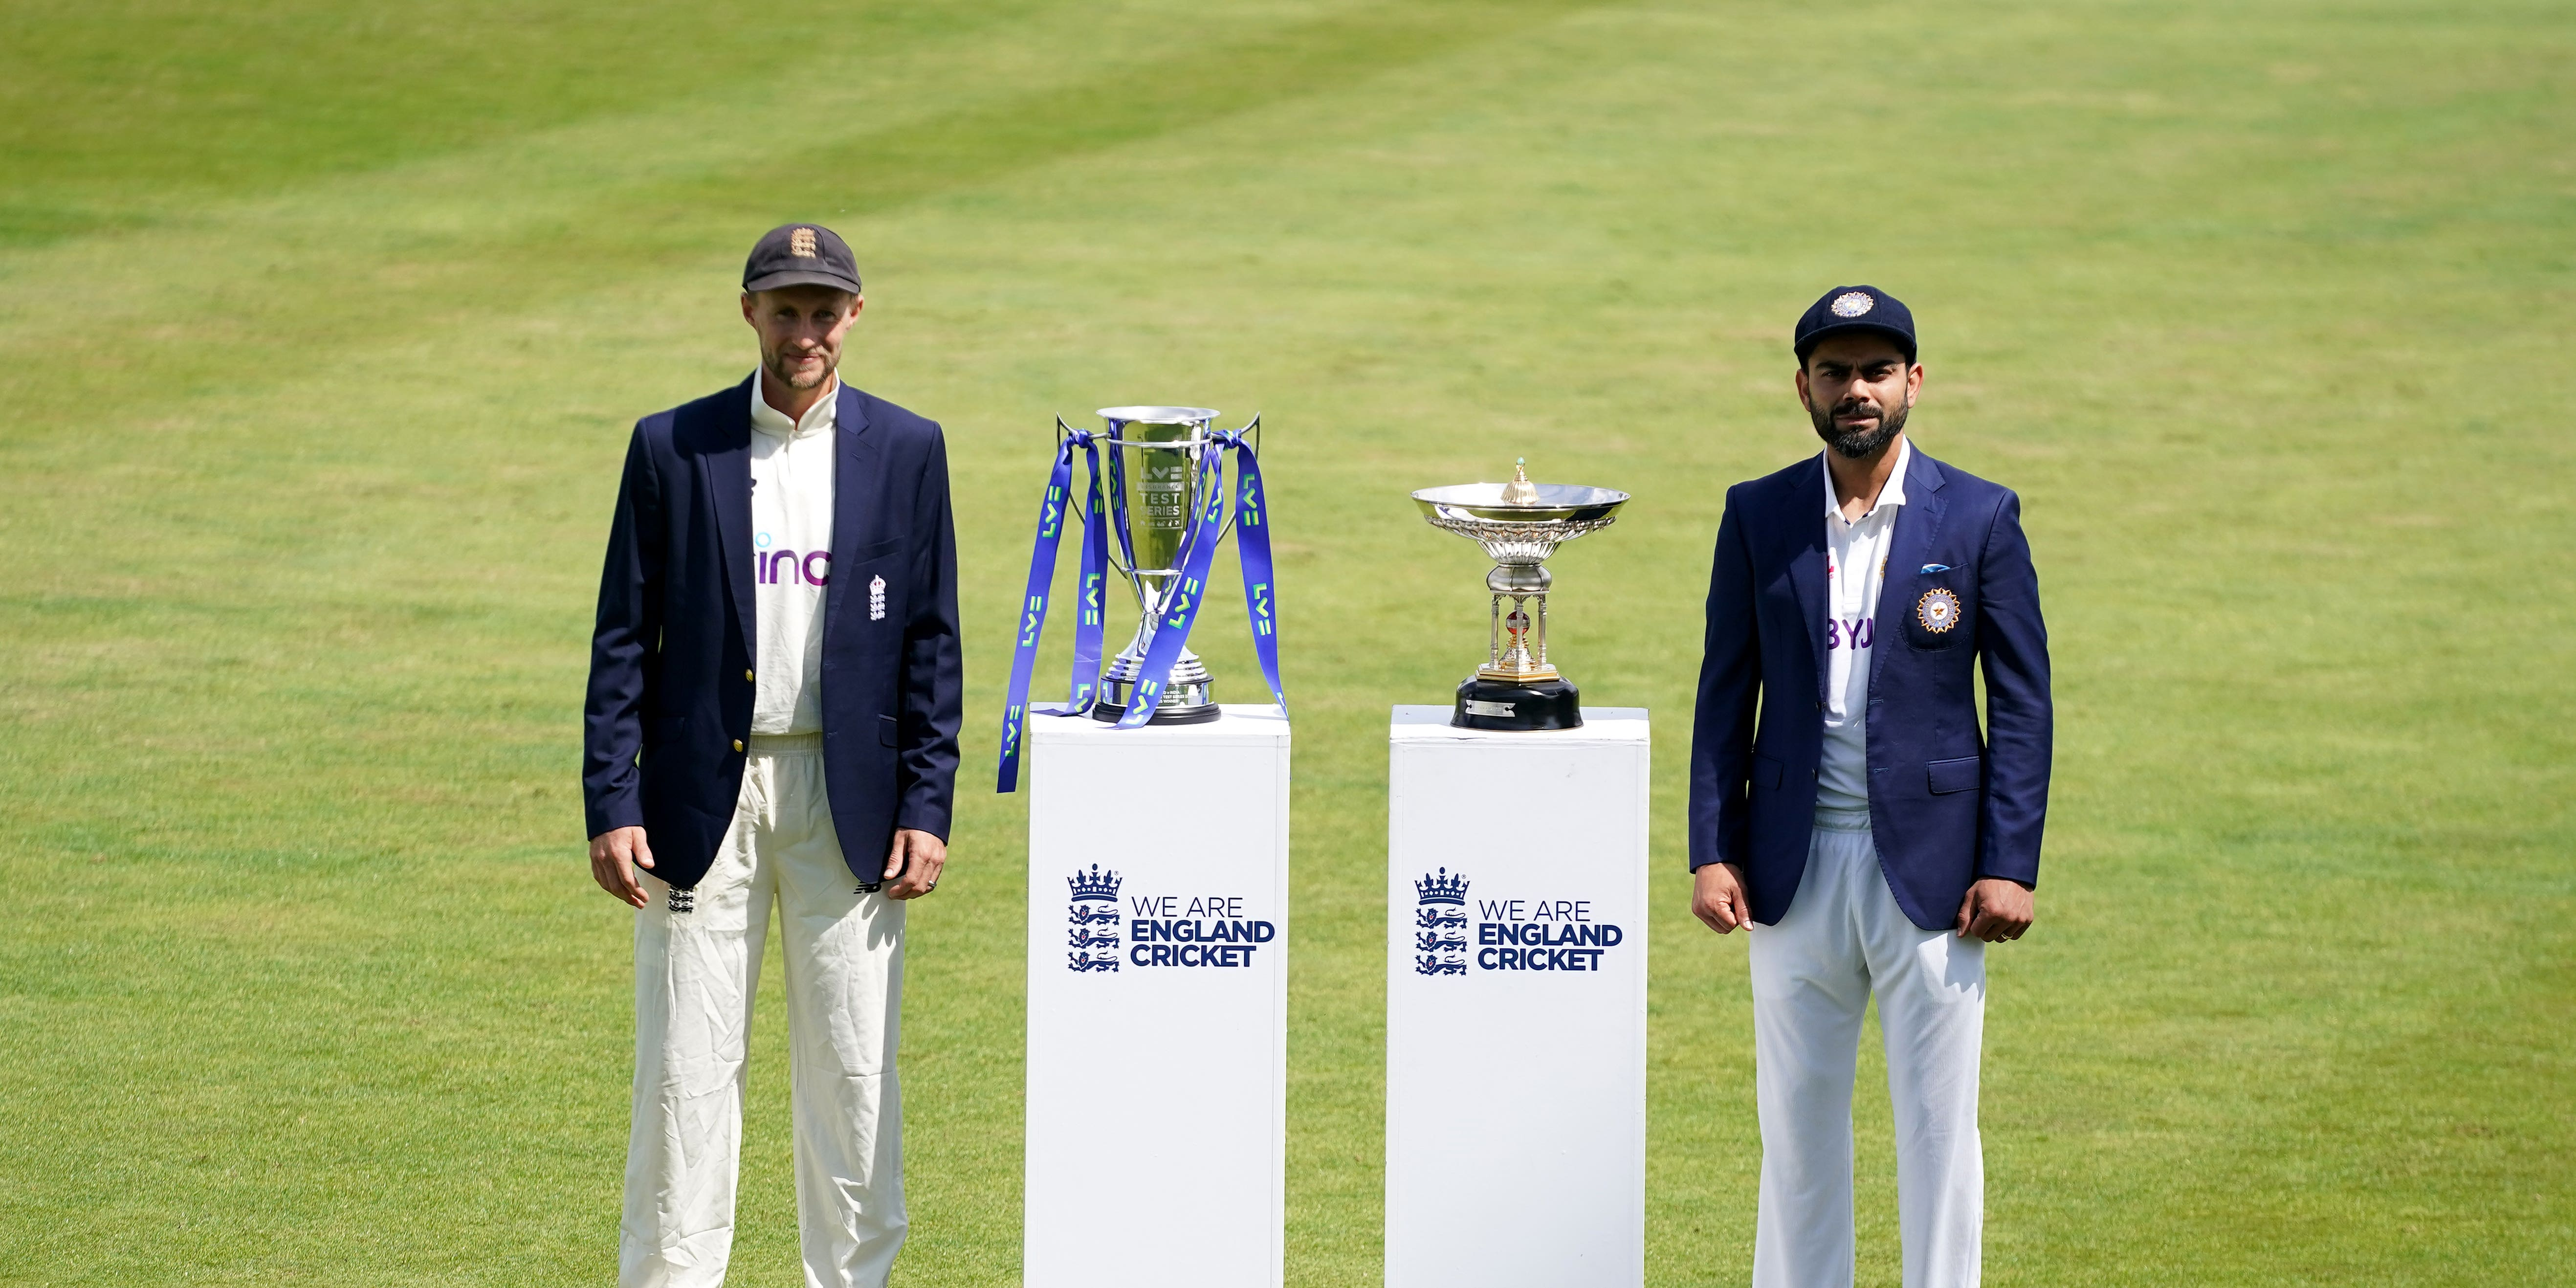 Home comforts but an uncertain batting order – England v India talking points